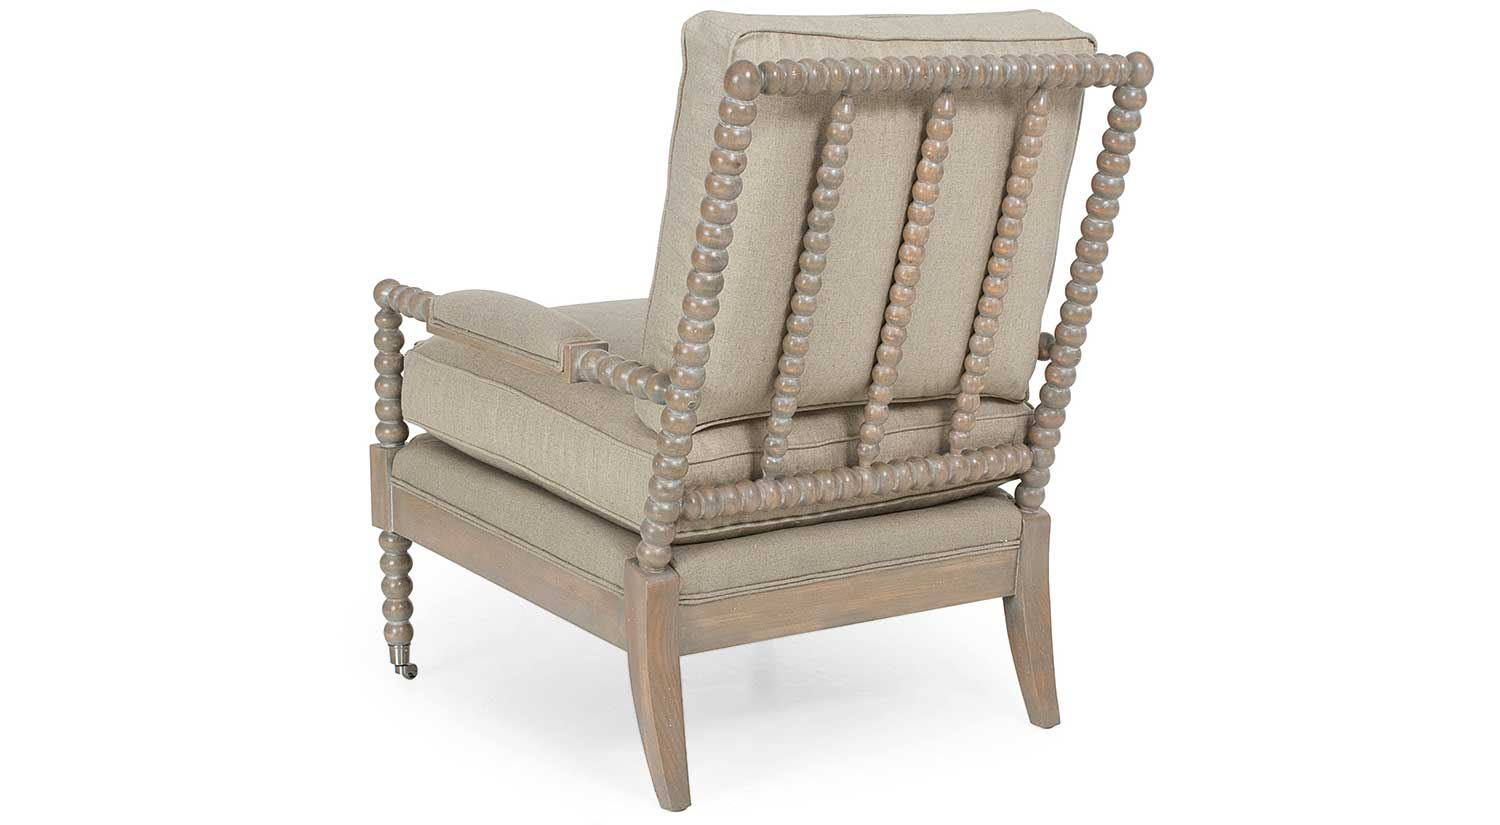 new stonegable copy chairs living spool room chair of img